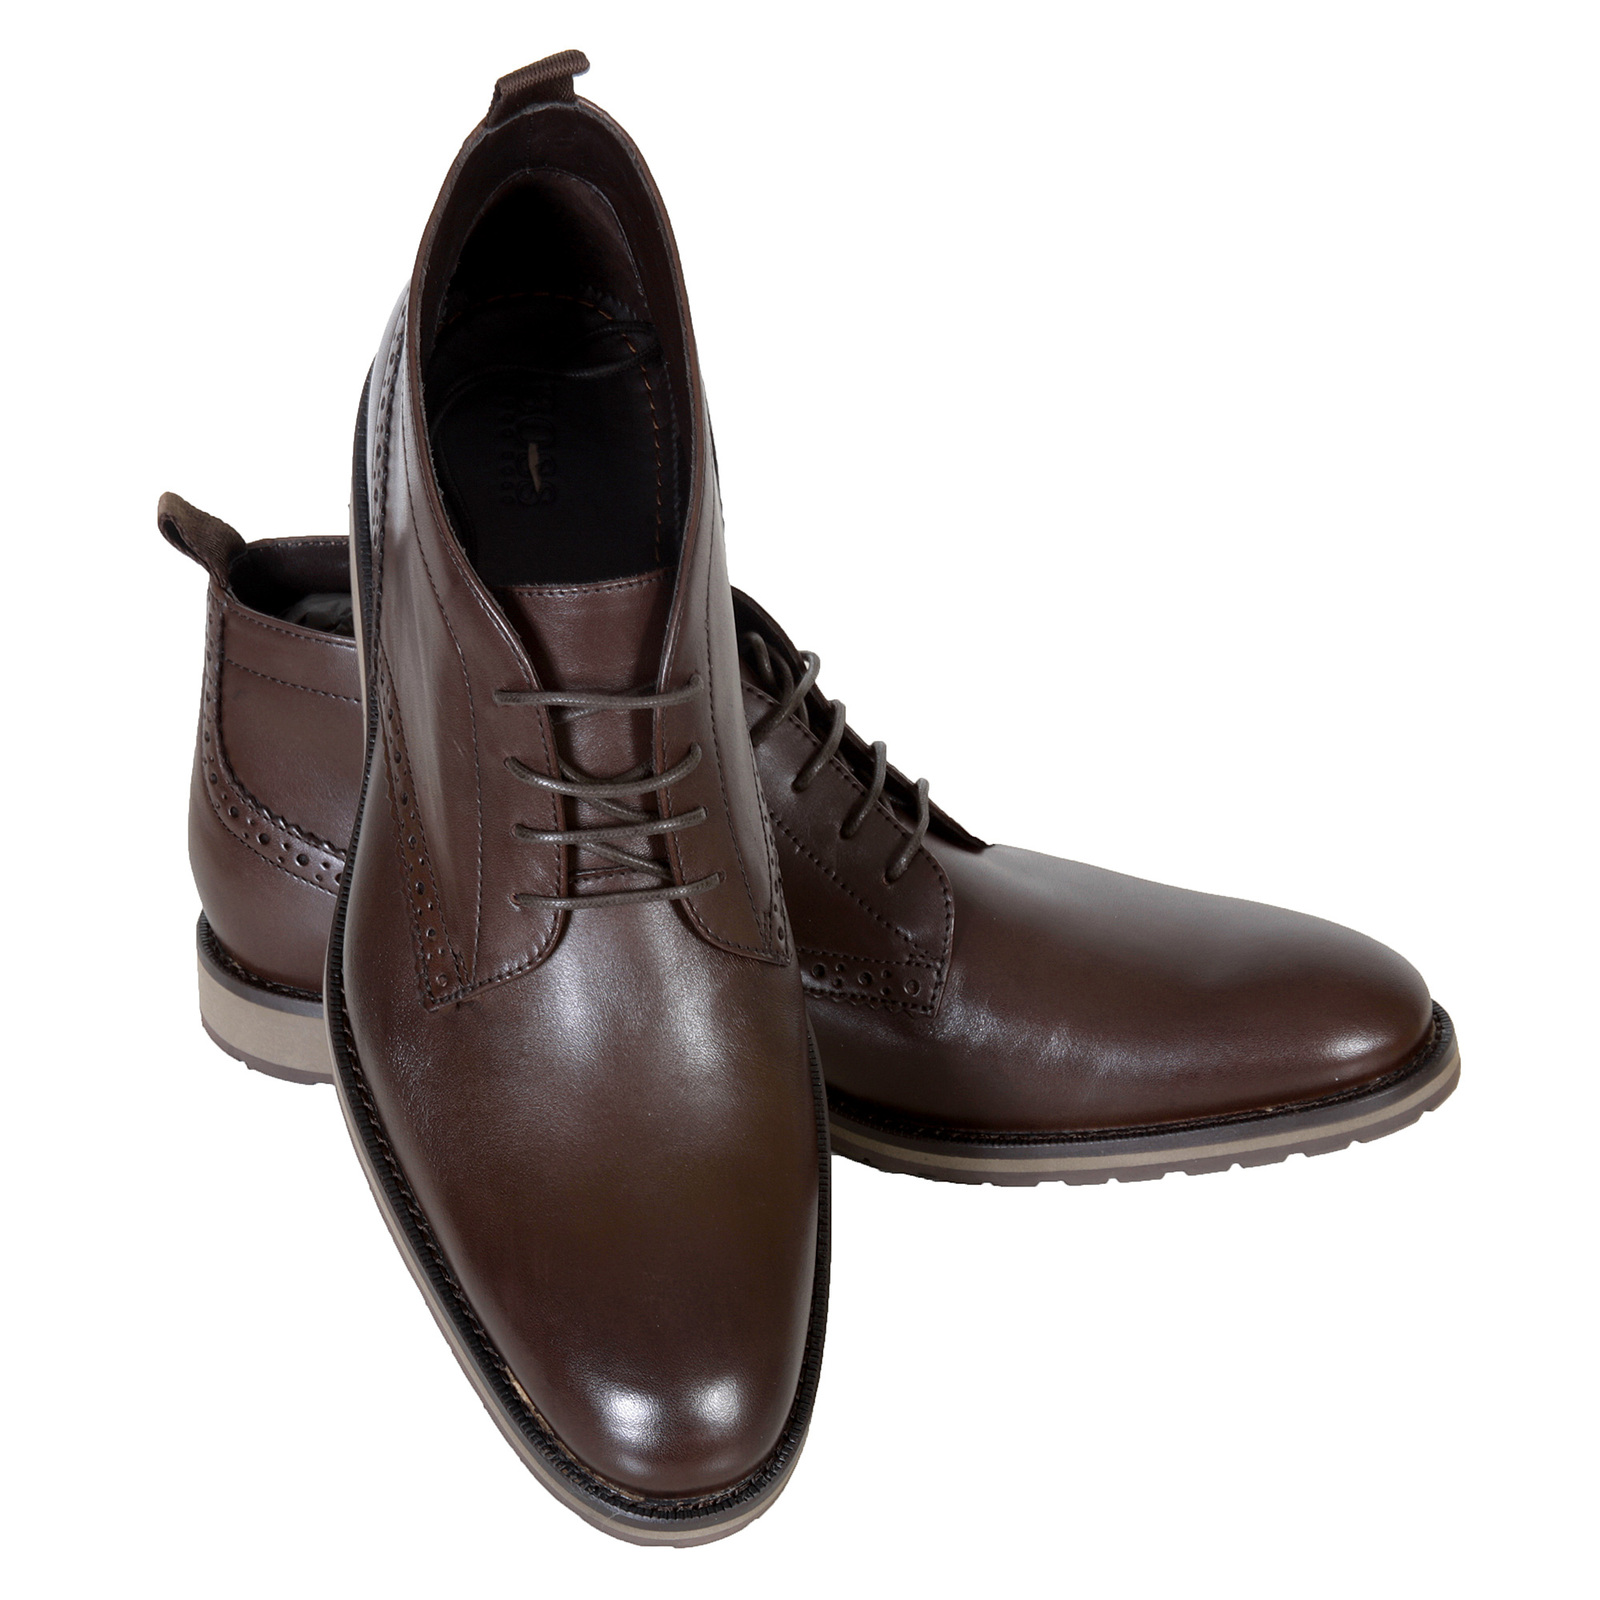 18b5a739fd0 Hugo Boss Black Label mens Nevisio 50247369 brown leather ankle boots  BOSS2764 at Togged Clothing